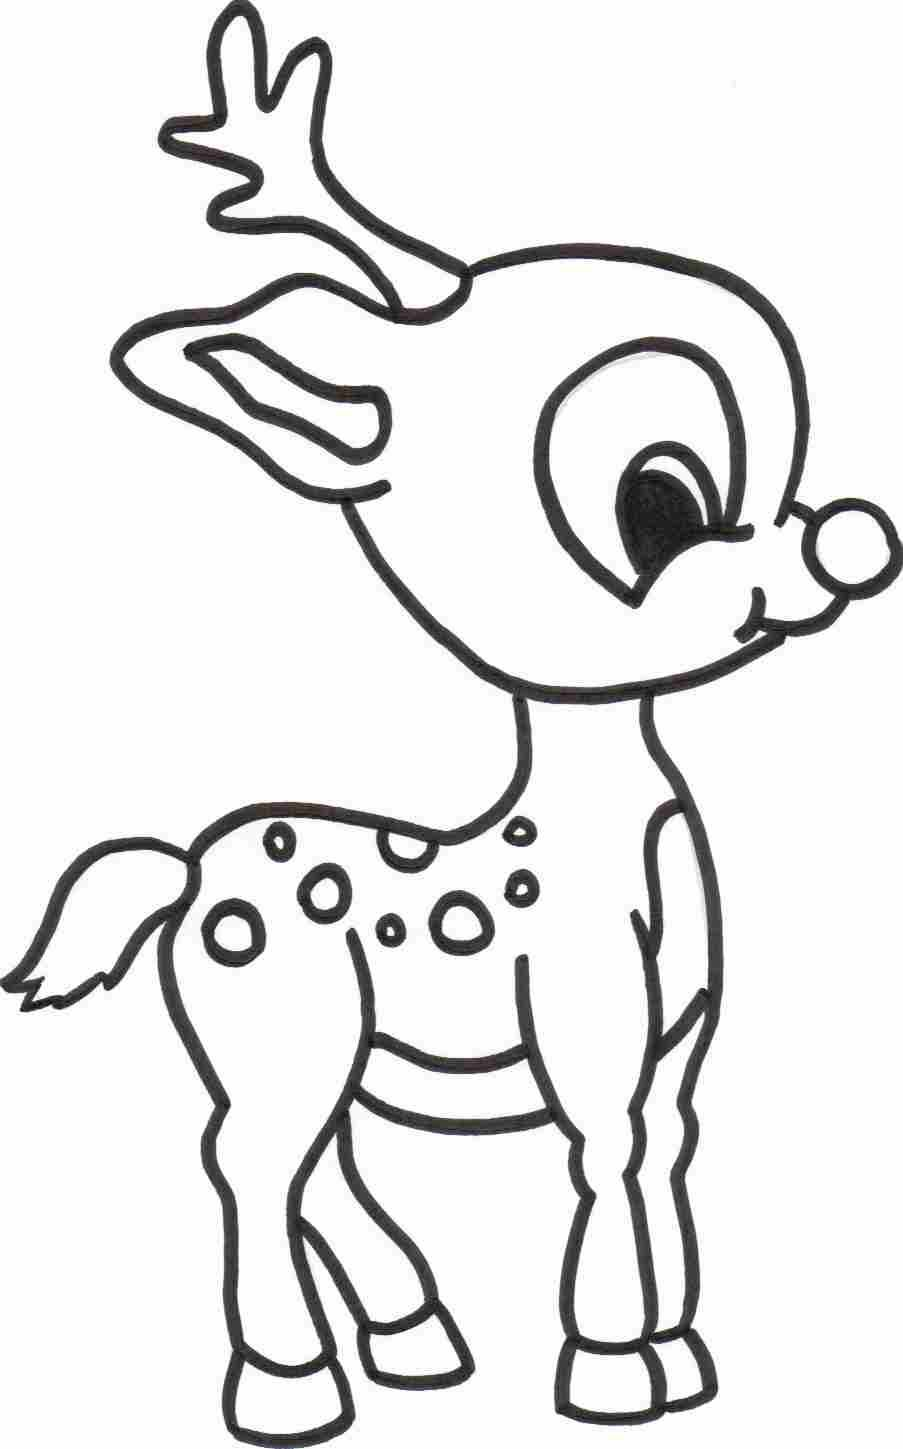 Christmas Coloring Pages Easy With Free Printable Reindeer For Kids Sketch Pinterest